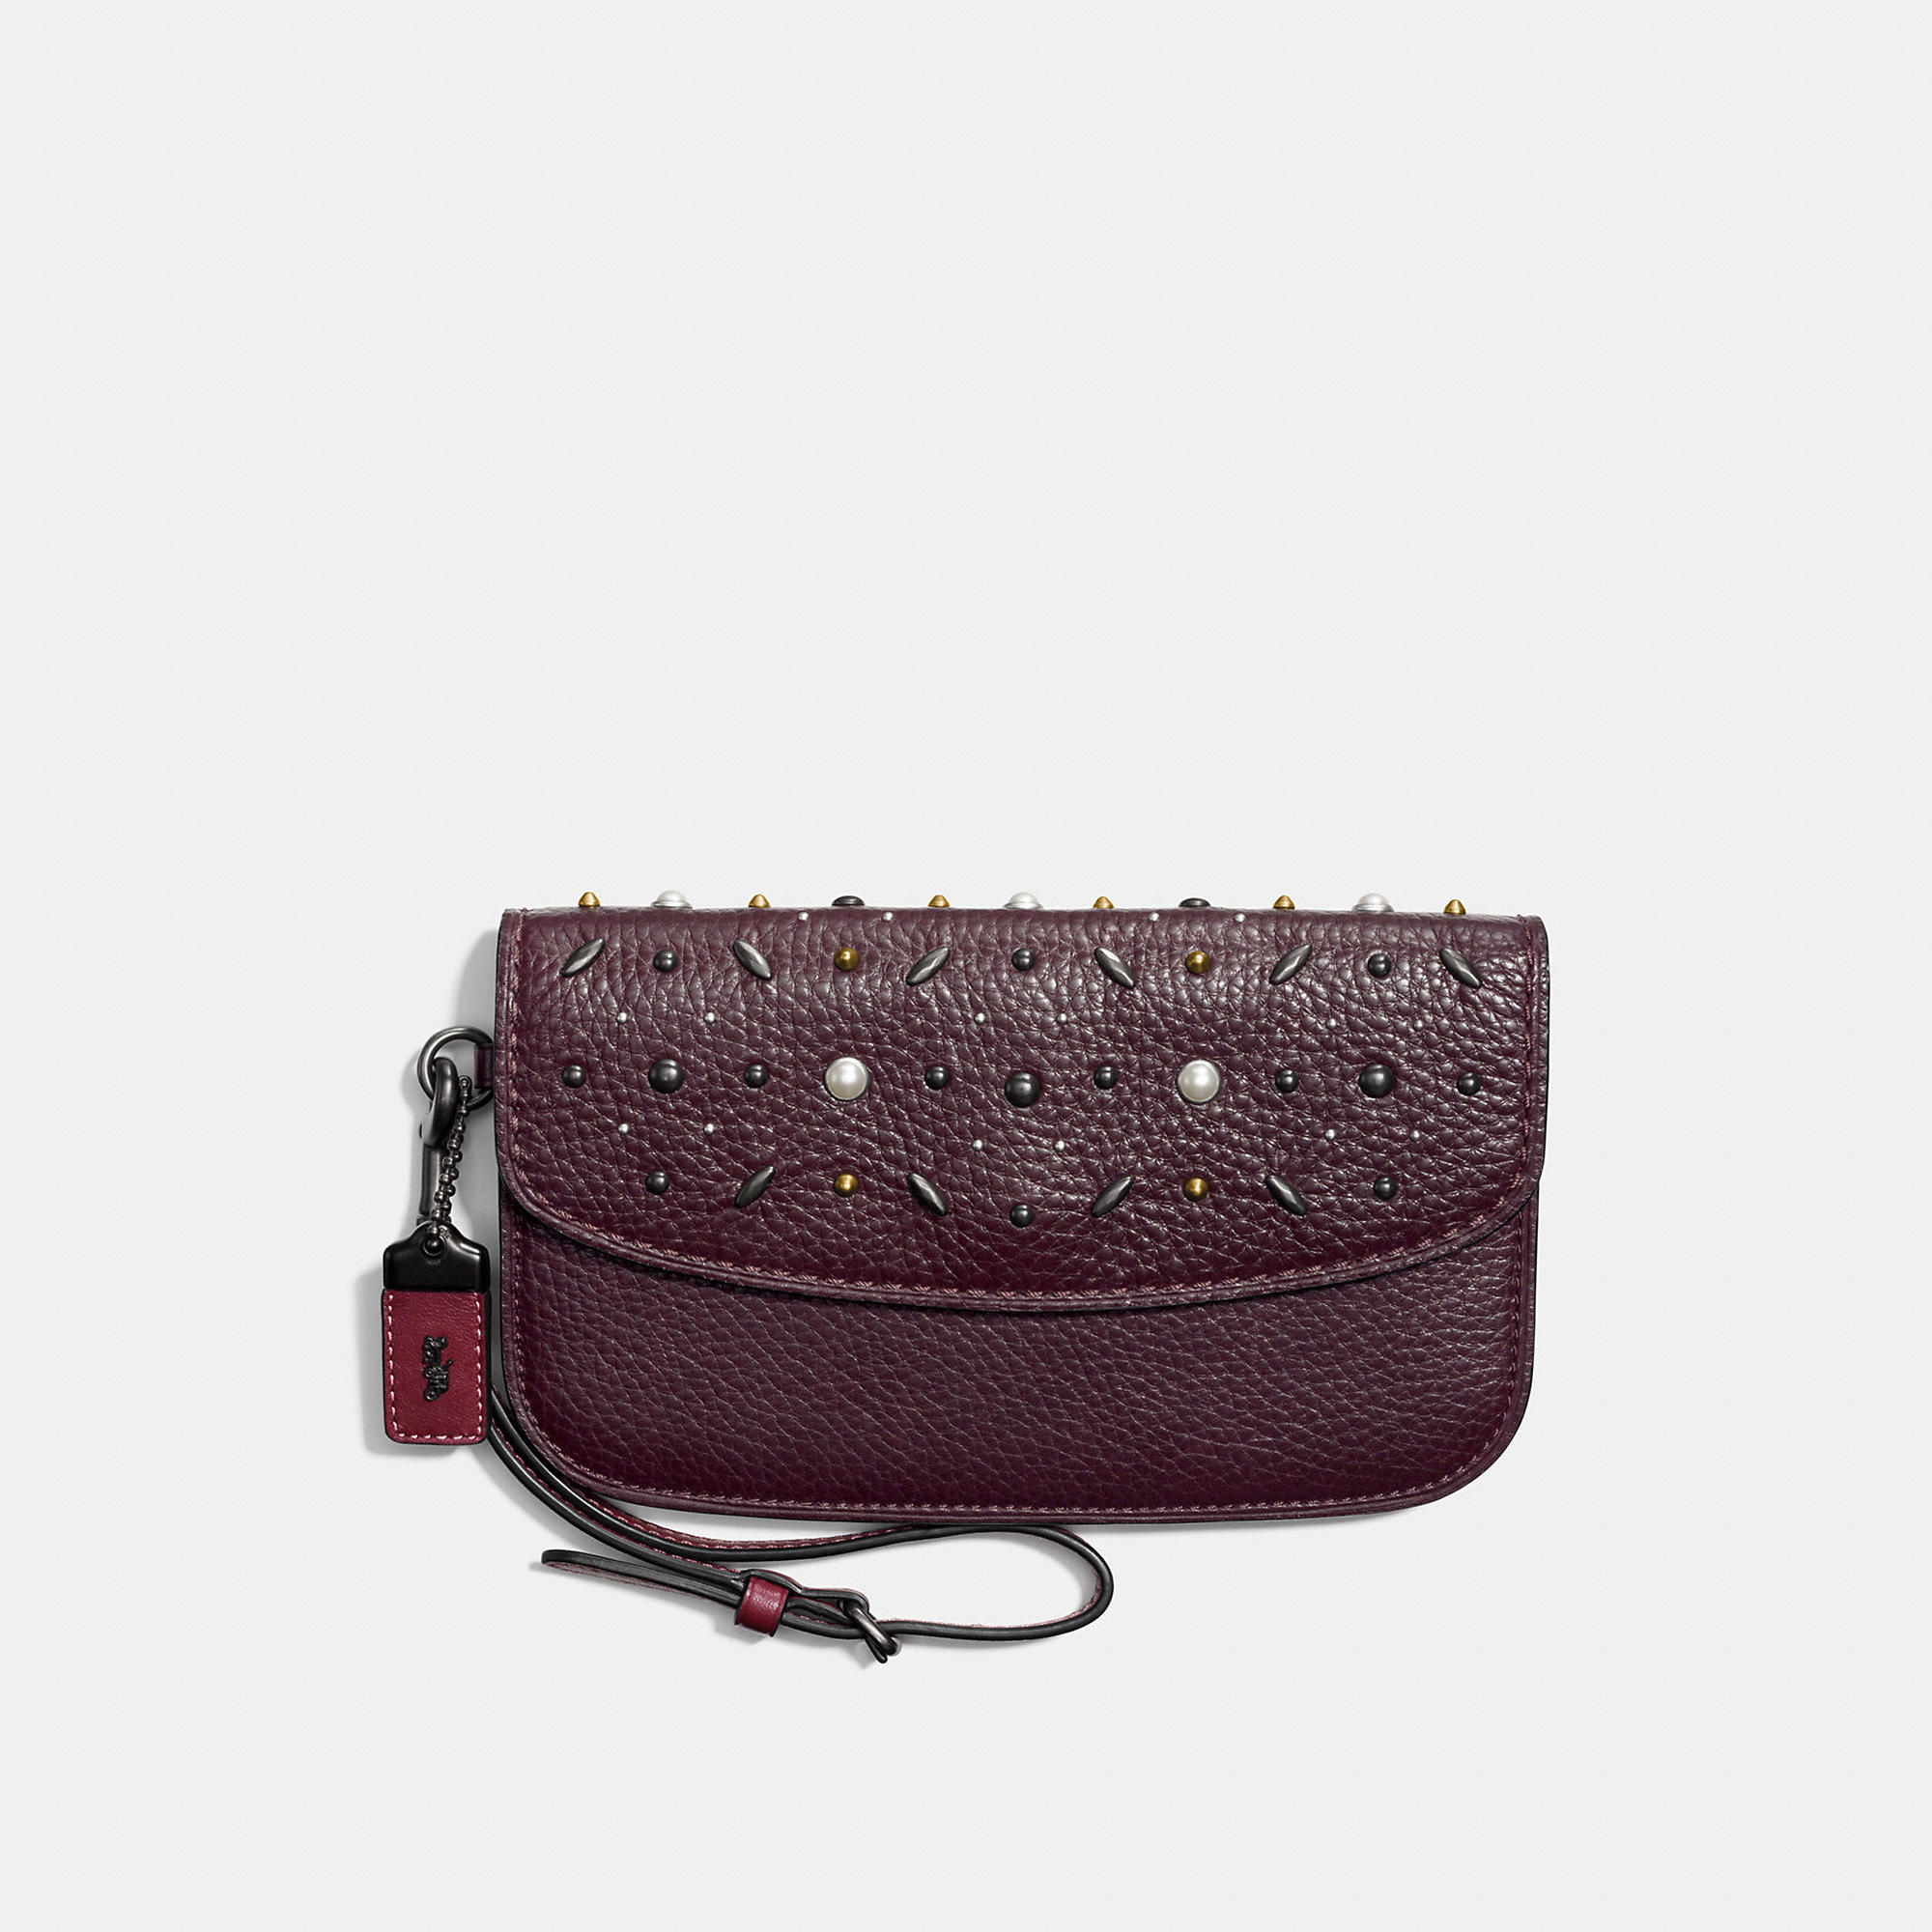 Coach Clutch In Natural Pebble Leather With Prairie Rivets